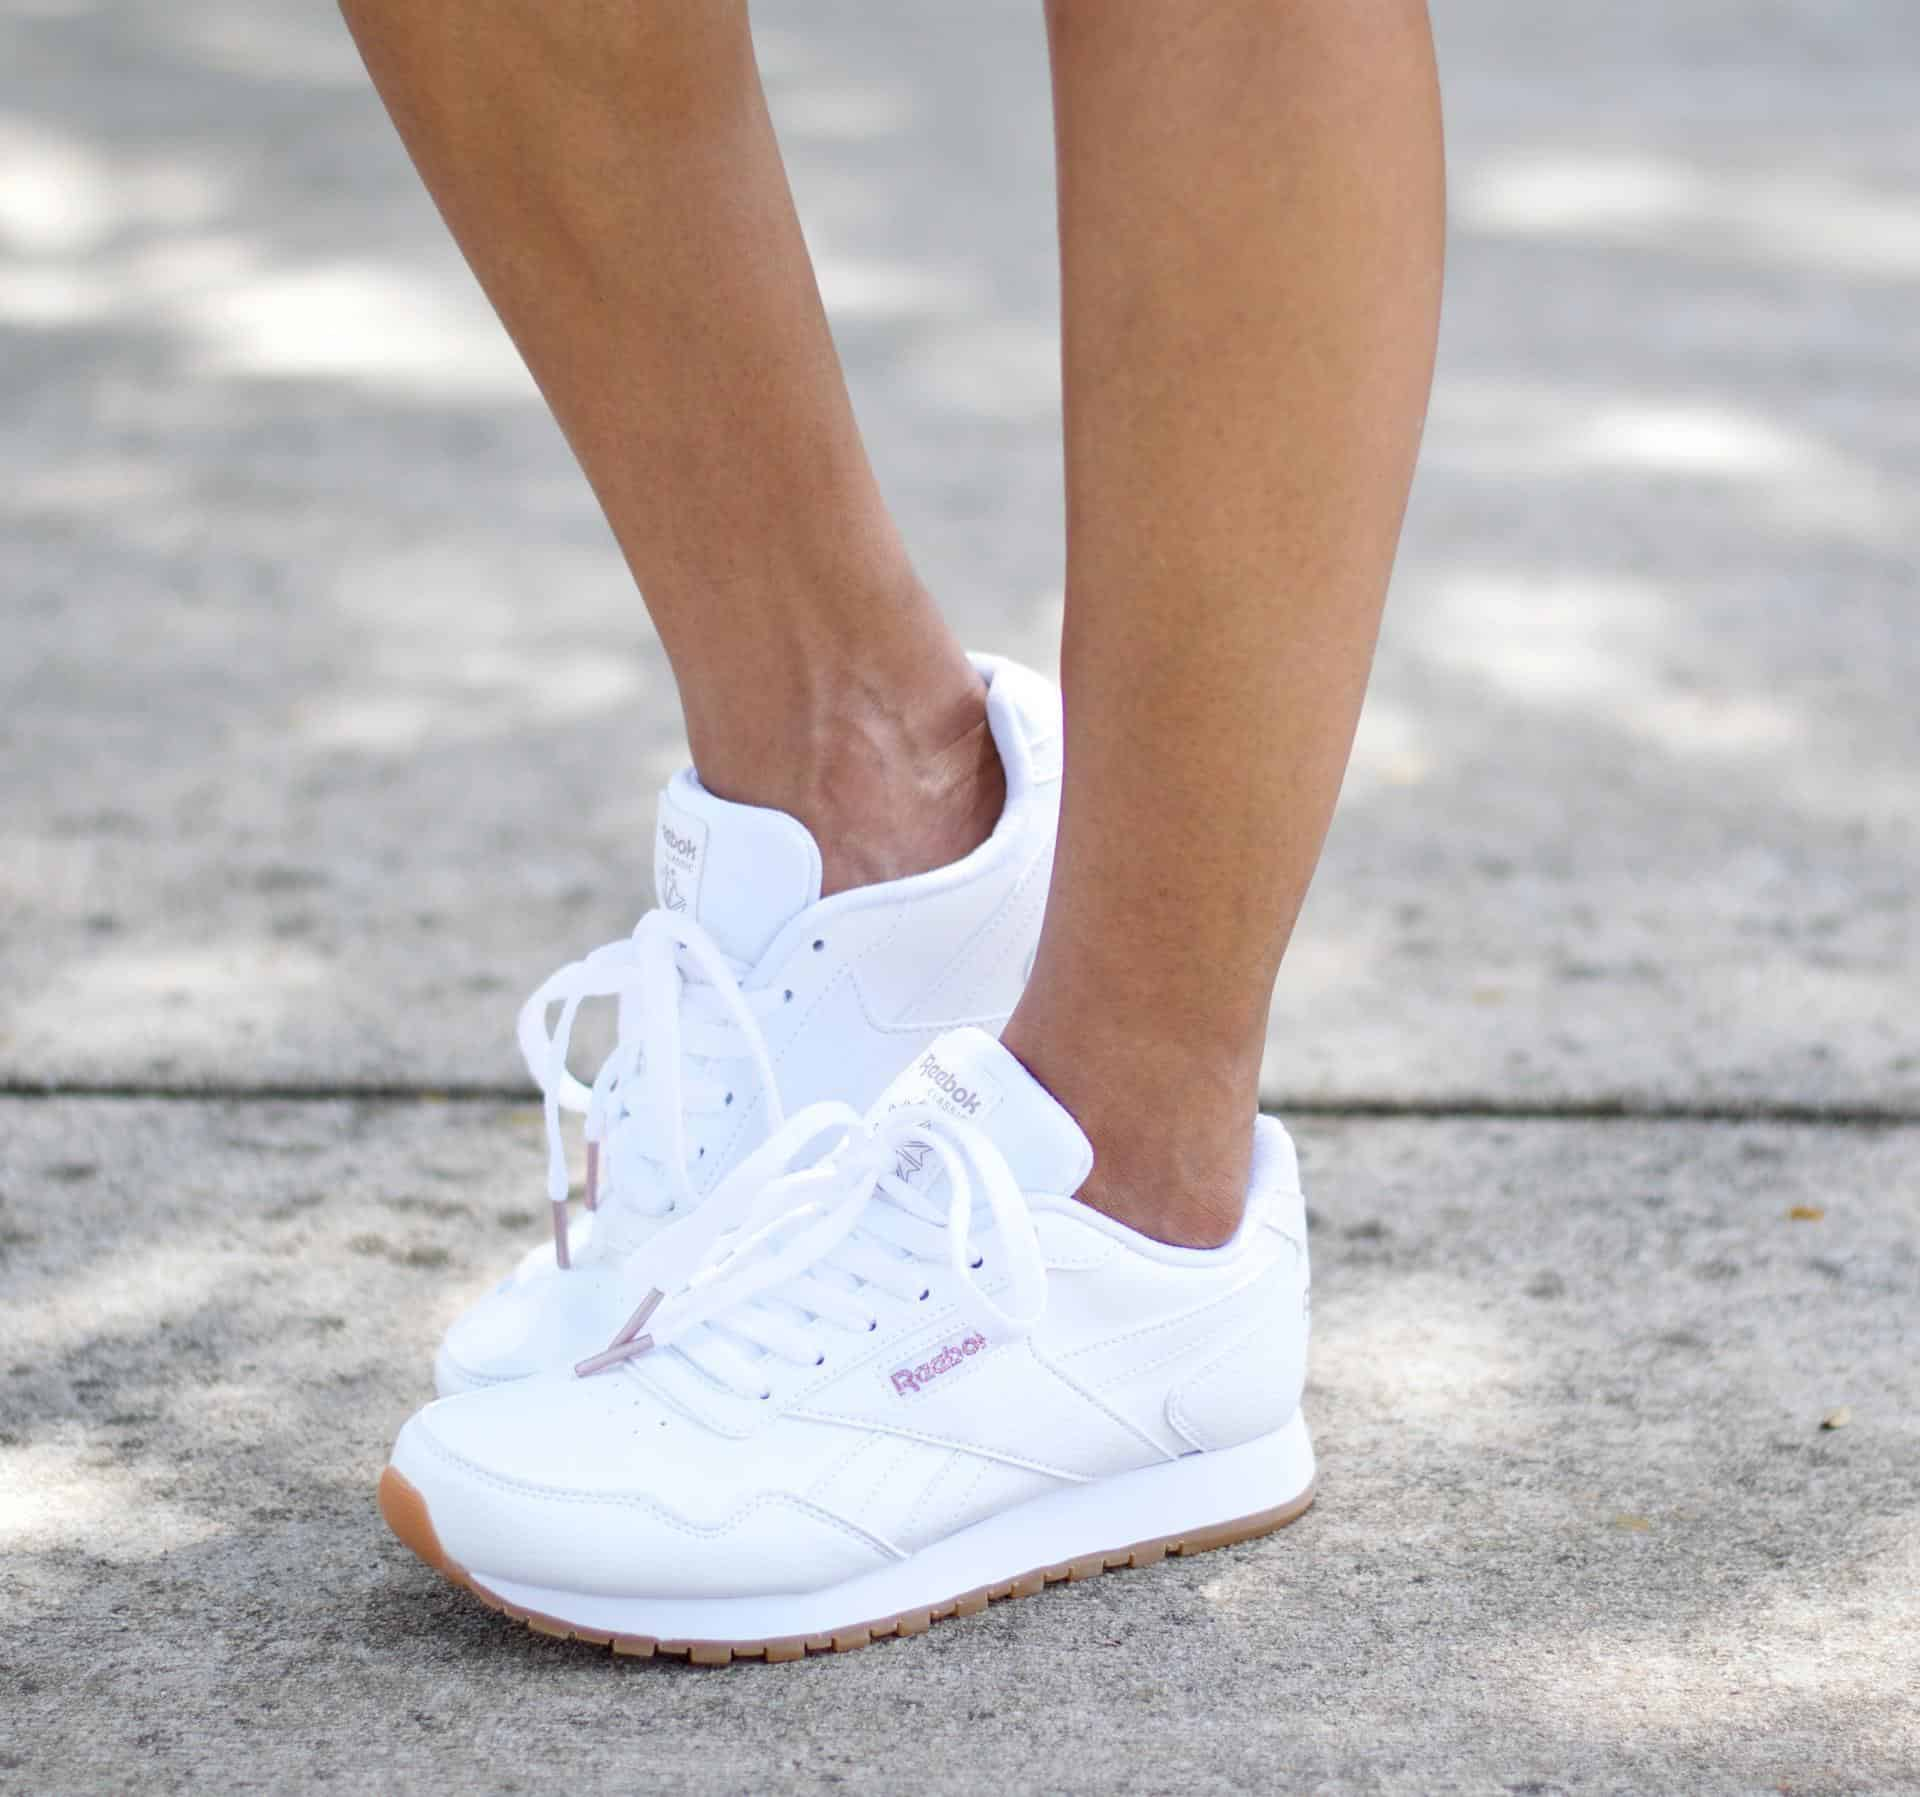 Reebok Classic Shoes With Dsw An Unblurred Lady